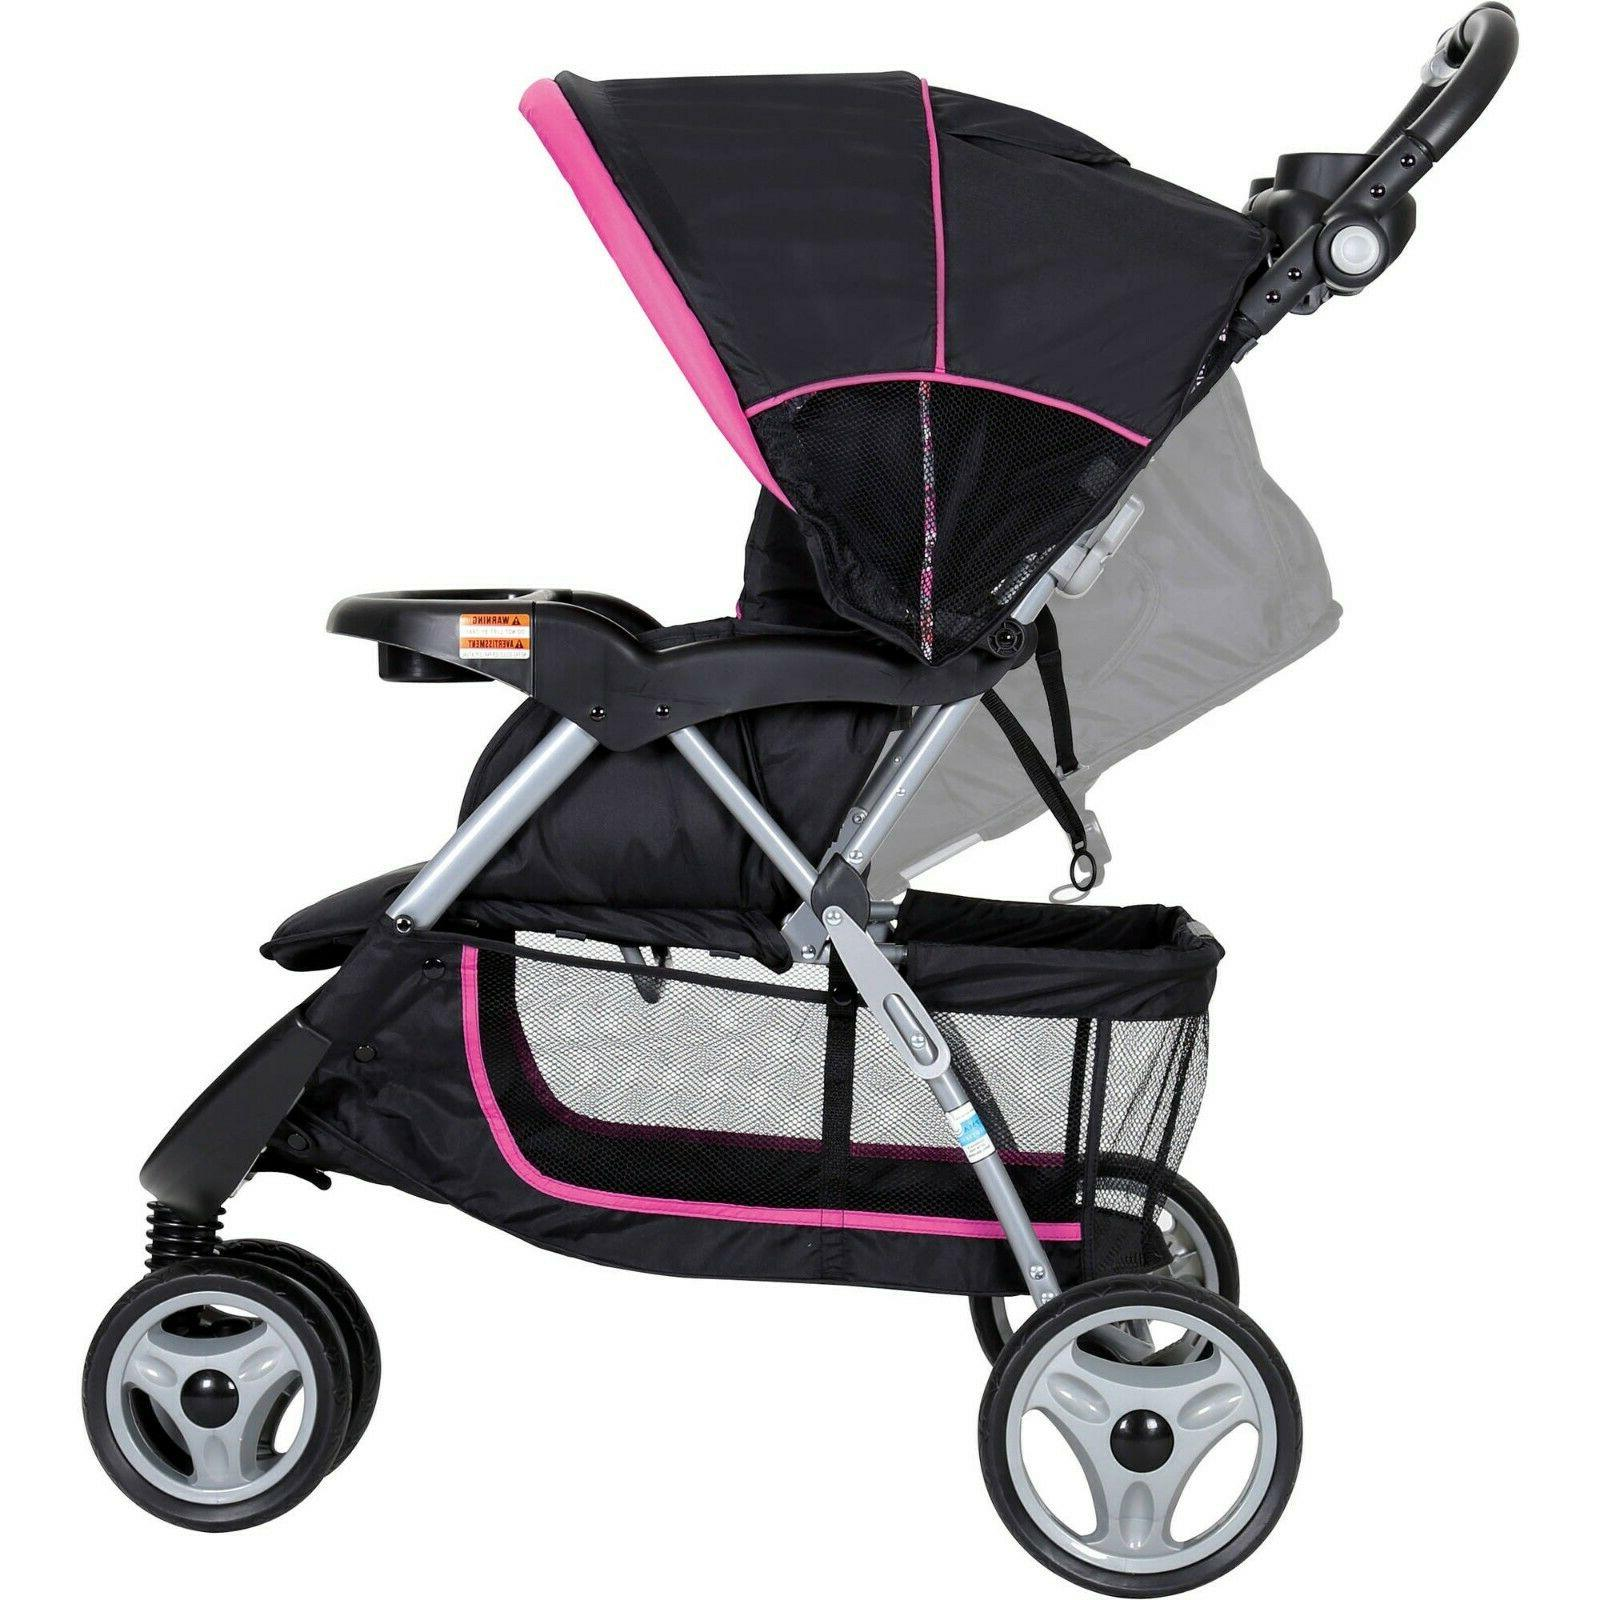 Baby Travel System, Floral Garden, includes the Stroller and